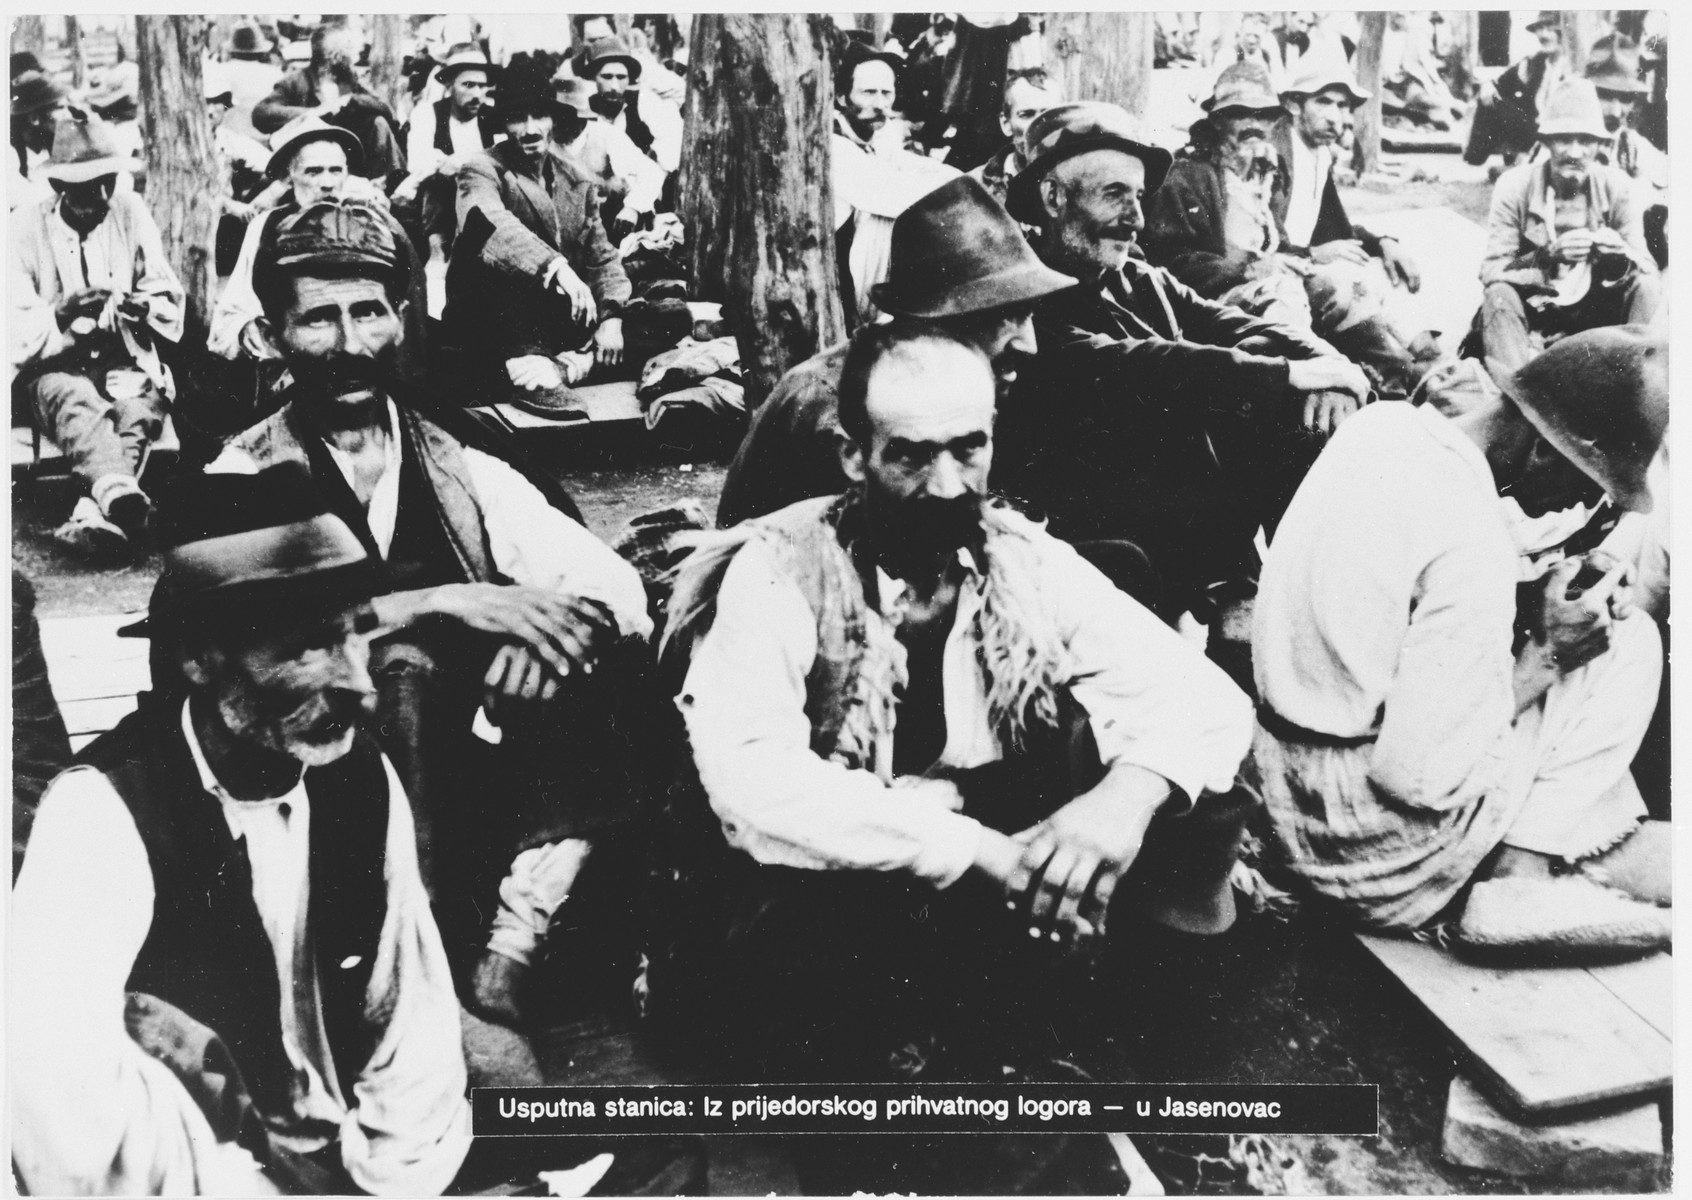 Serbian villagers from the Kozara region who have been rounded-up for deportation, wait in a transit camp in Prijedor for transport to the Jasenovac concentration camp.]